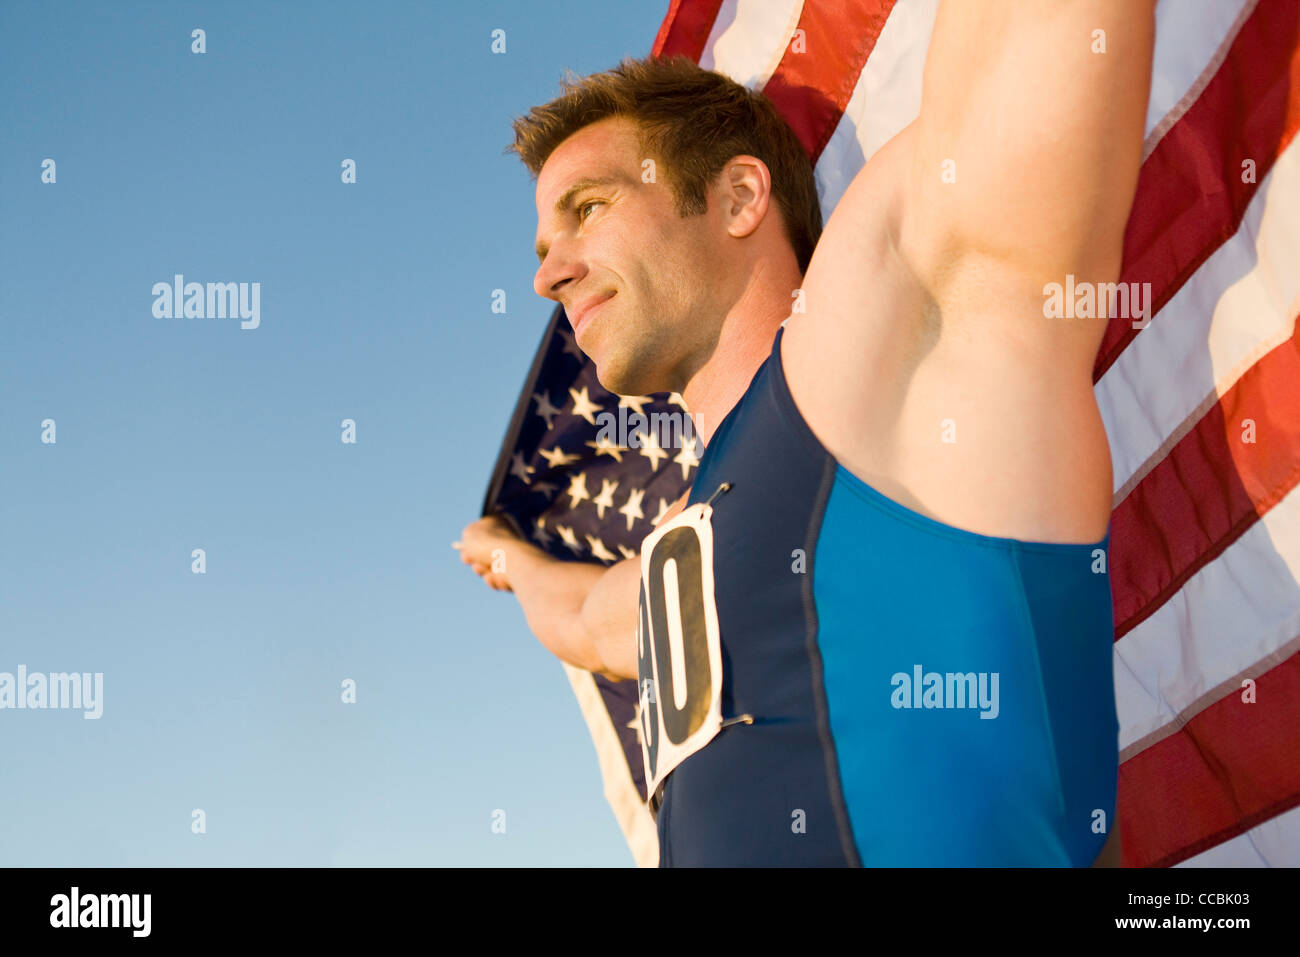 Athlete holding American flag, low angle view - Stock Image